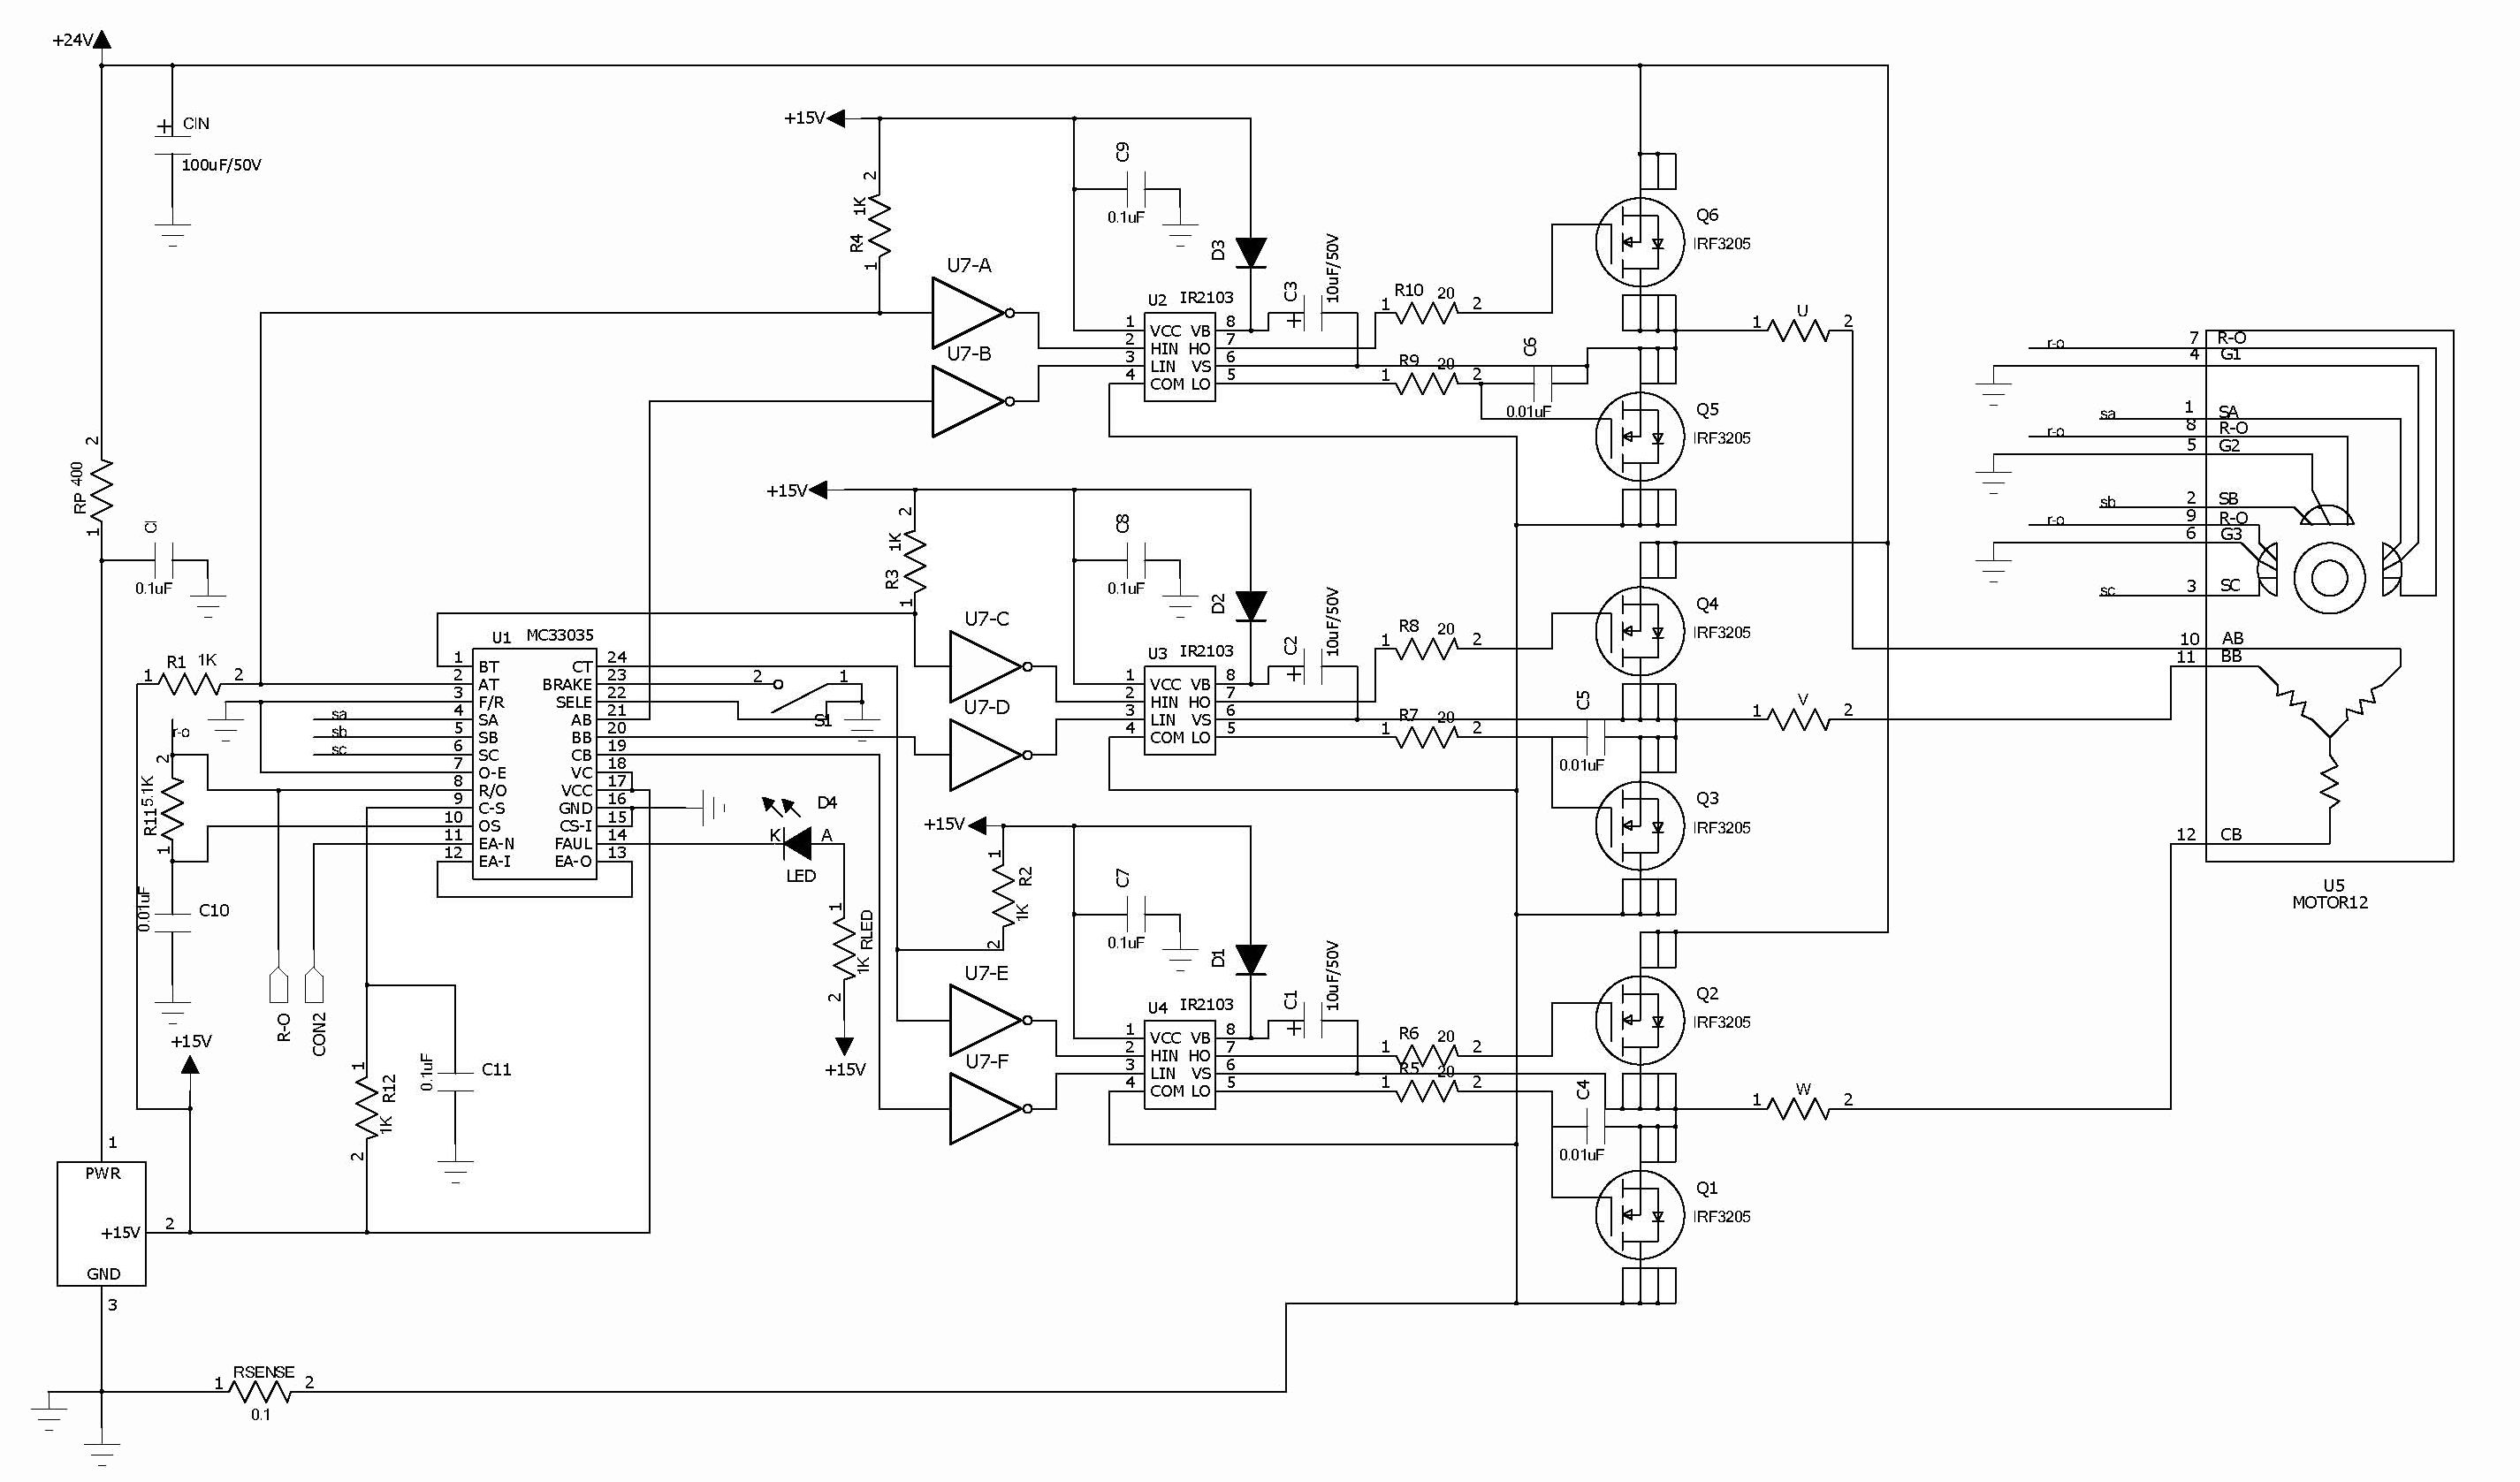 scooter controller schematic diagram rotary phone parts electric get free image about wiring